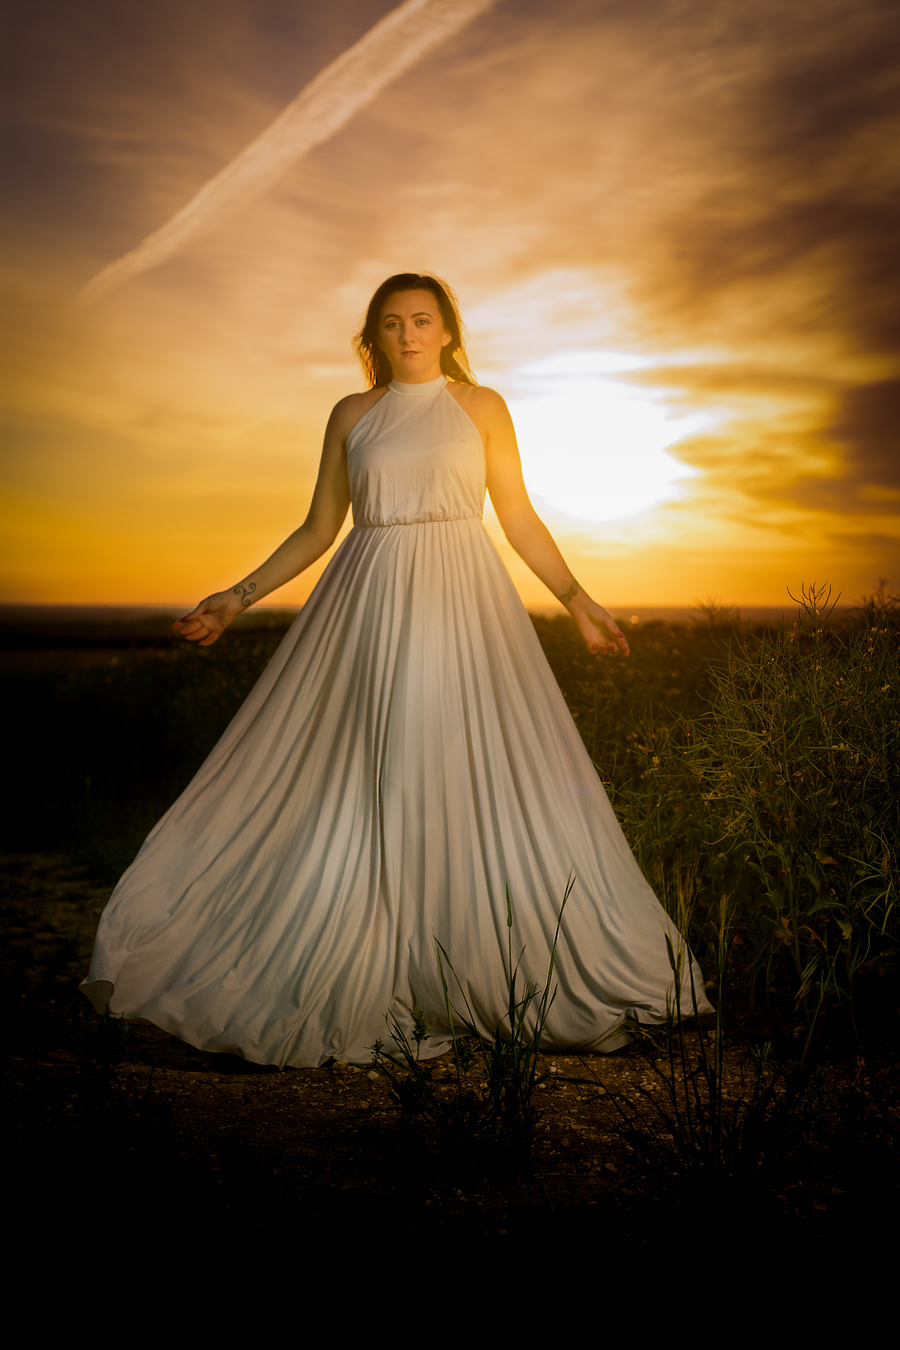 Field of Angels / Photography by Dave Lynes, Model PJ Elise, Post processing by Dave Lynes / Uploaded 15th June 2020 @ 01:07 PM